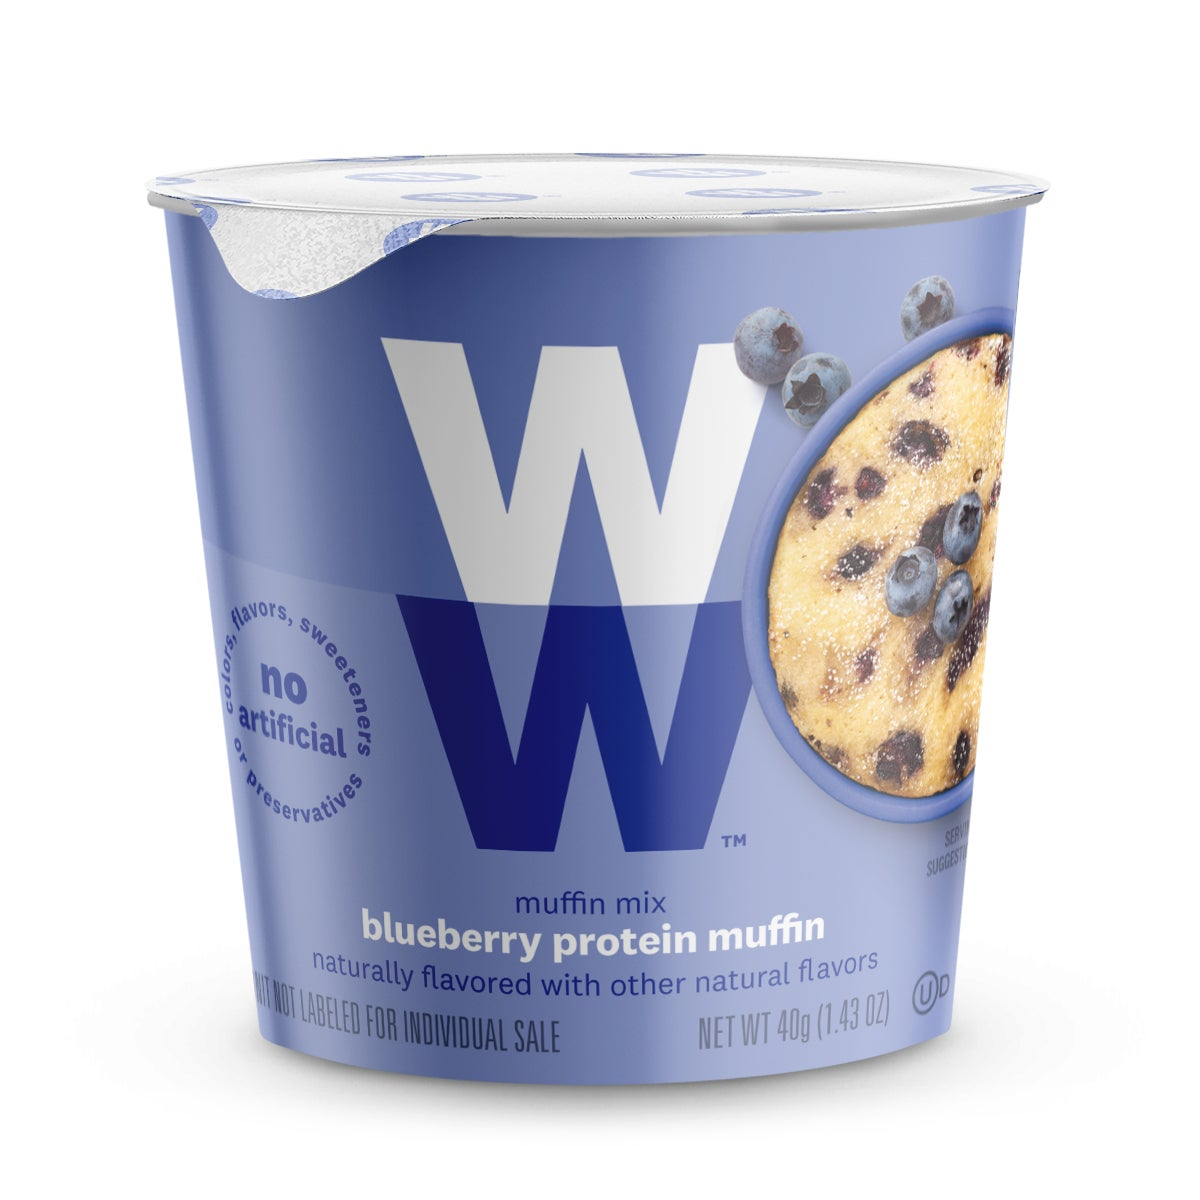 Blueberry Protein Muffin Mix - front of cup